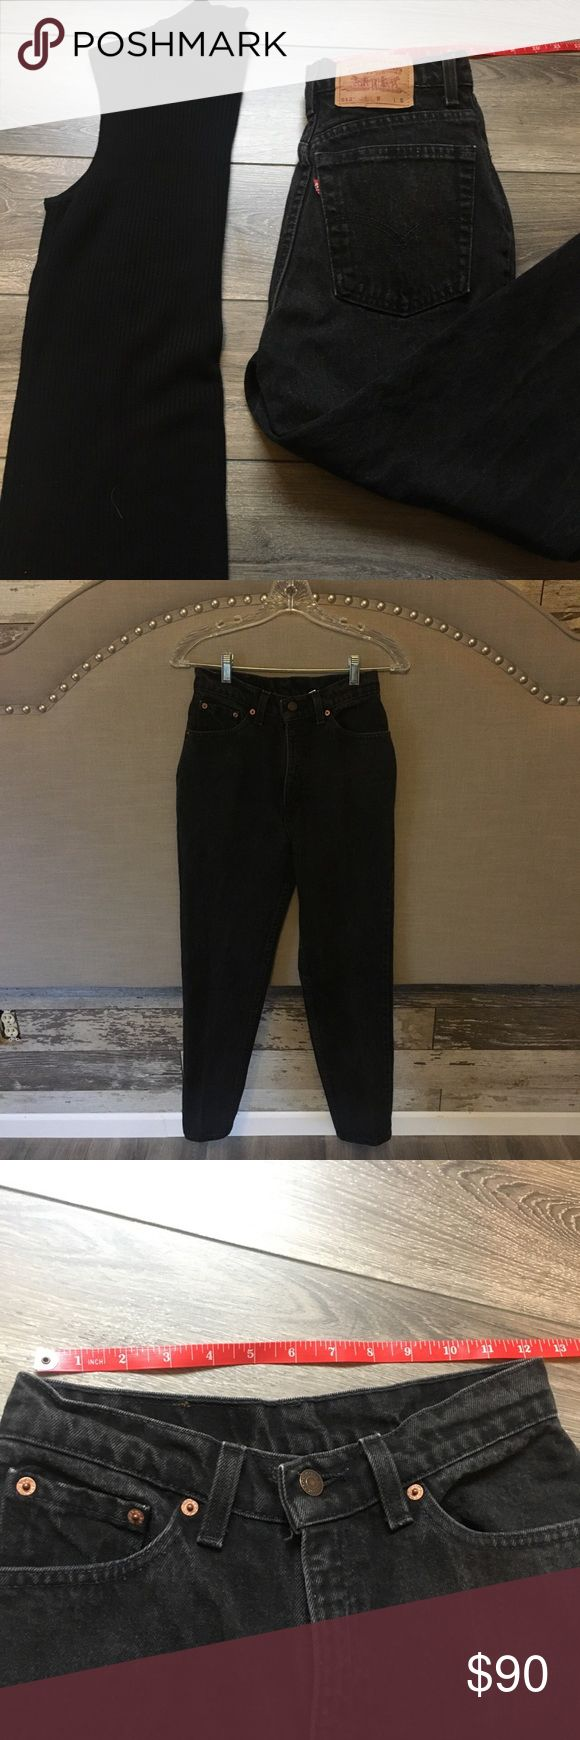 ⭐️️Vintage⭐️️Levi 512 black denim Black denim. High waisted, and vintage faded. Size 24! Get these while you can Levi's Jeans Straight Leg